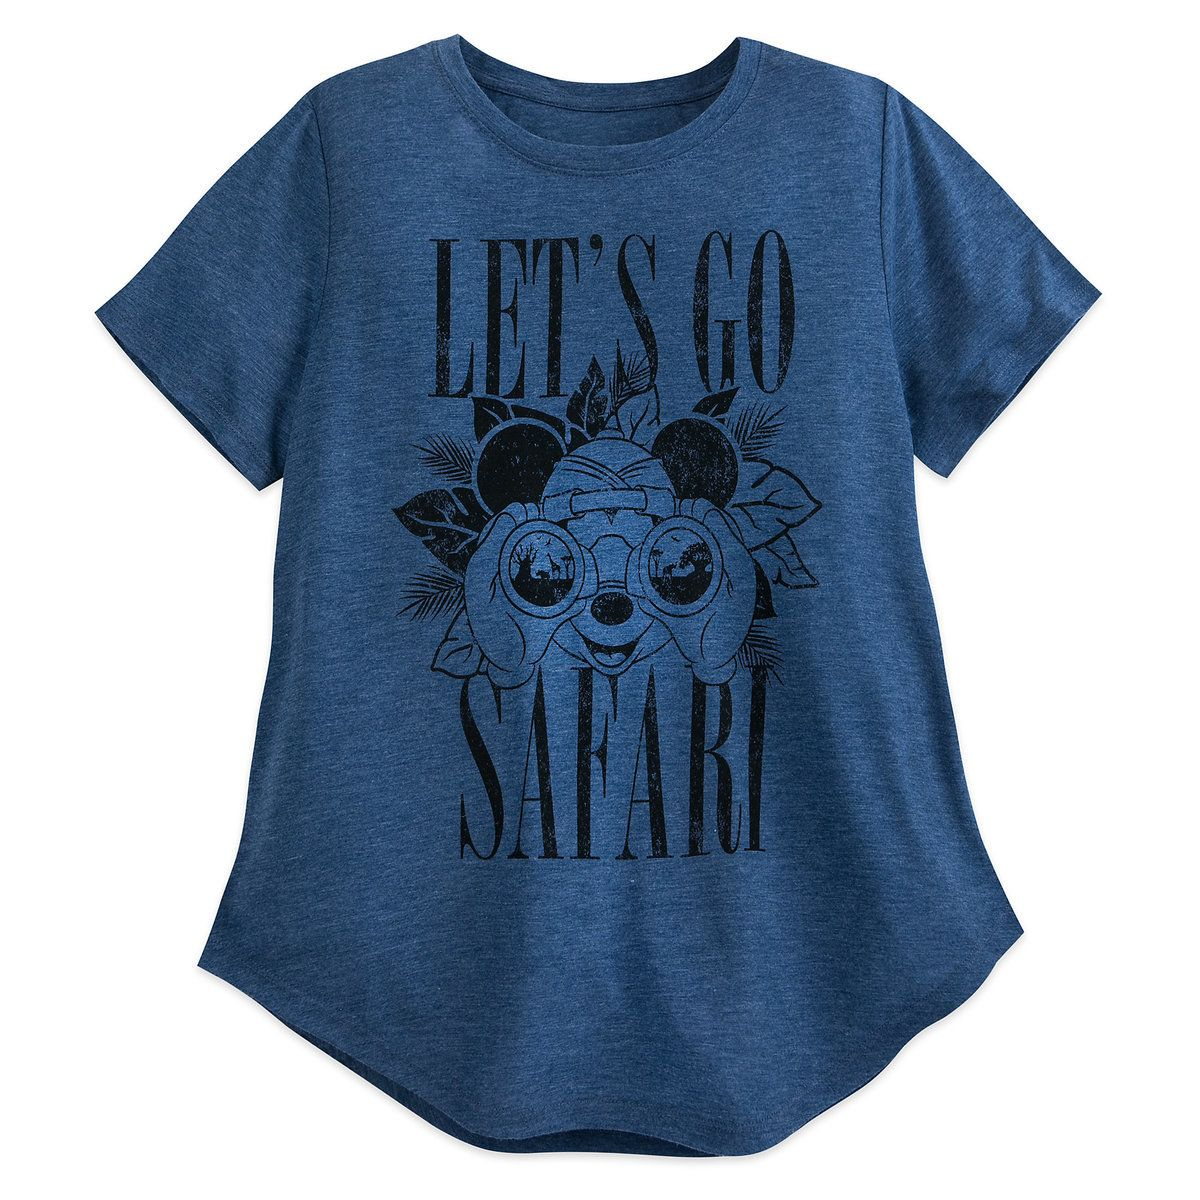 d846ed2a Product Image of Mickey Mouse ''Let's Go Safari'' T-Shirt for Women -  Disney's Animal Kingdom # 1